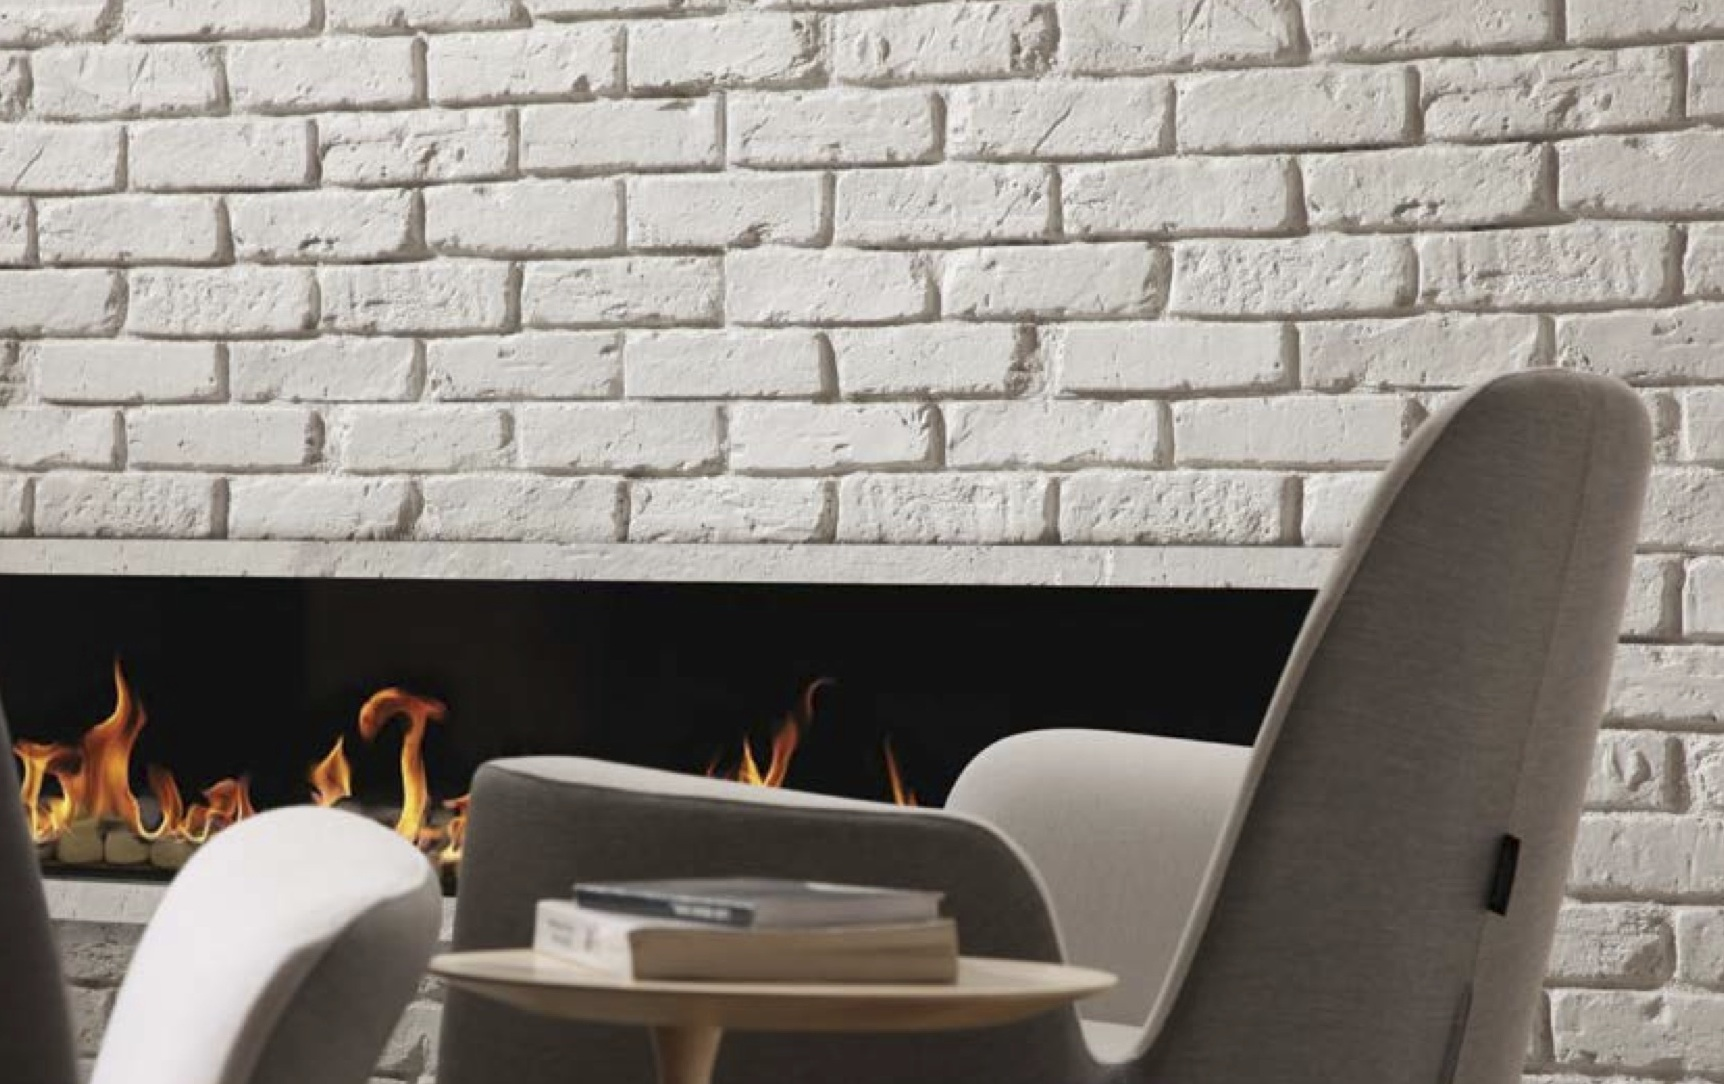 WHITE BRITISH FAUXBRICK WALL PANELS Dreamwall Wallcoverings With A